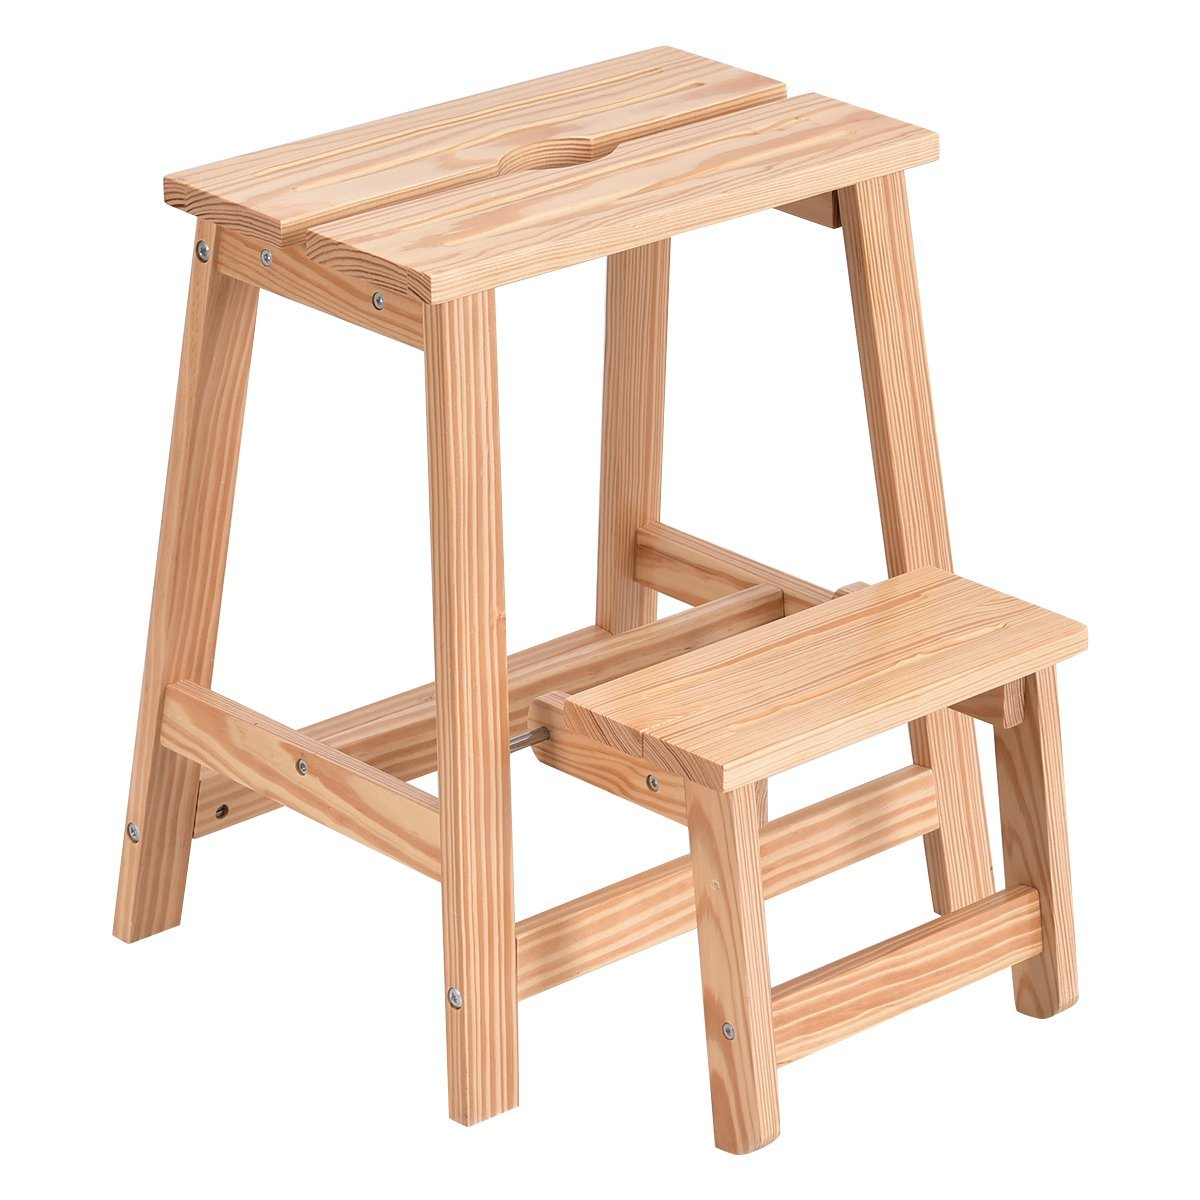 Step Up Kitchen Helper Adjule Height Wooden Safety Cooking Ladder Stool For Kids Little Chef Learning Furniture